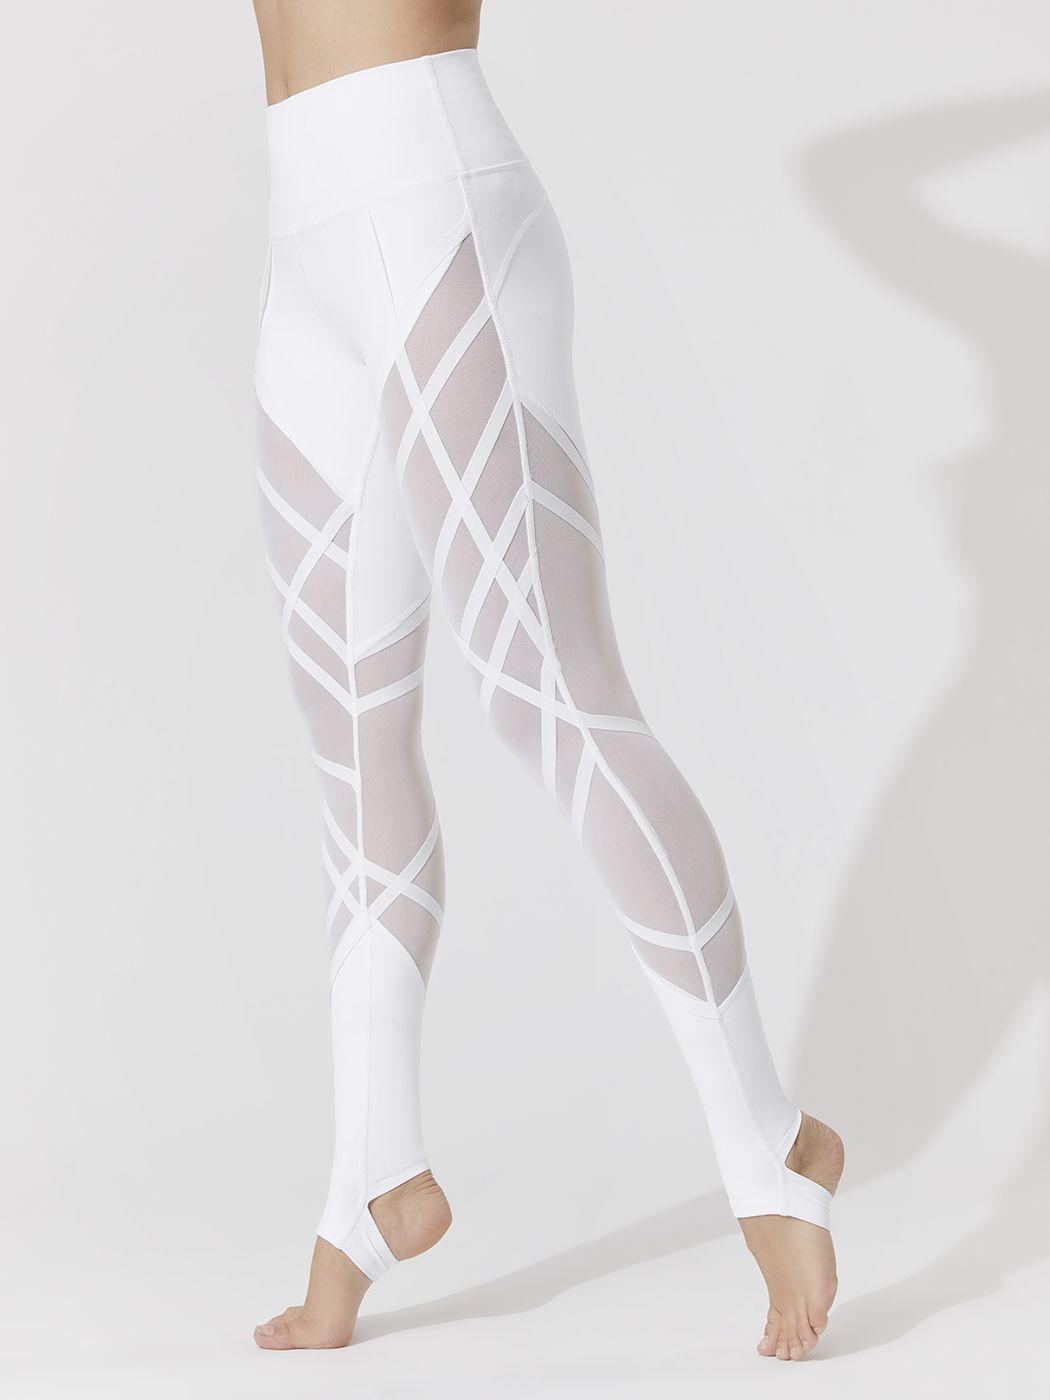 8643fe29b0c204 High-waist Wrapped Stirrup Leggings in White by Alo Yoga from Carbon38